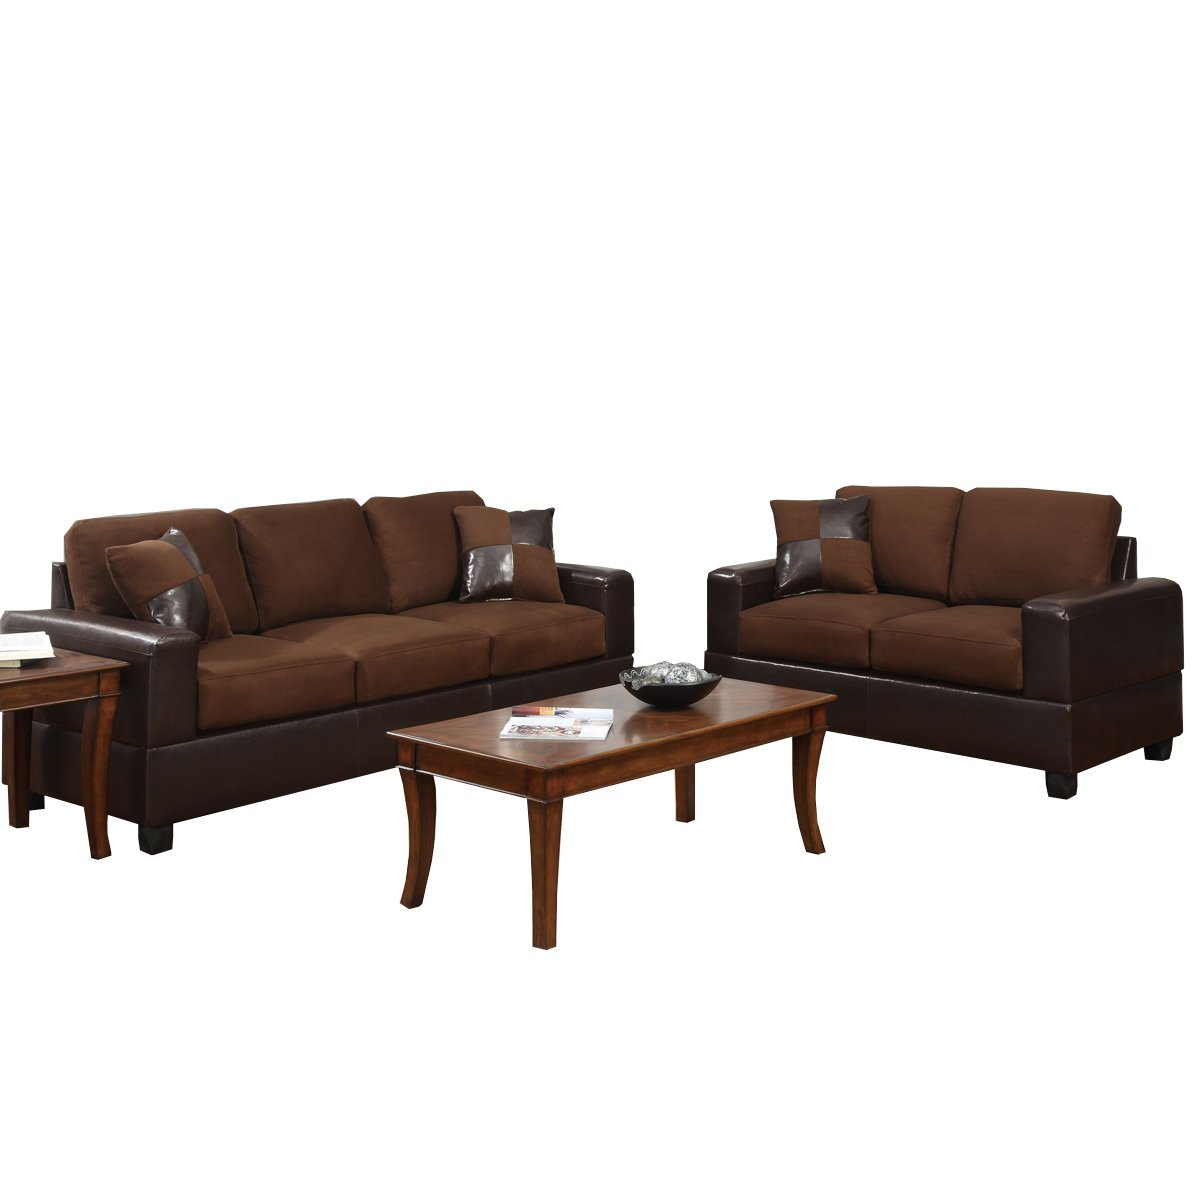 35+ Jawdroppingly Cheap Sofa Sets You Must Before Buying